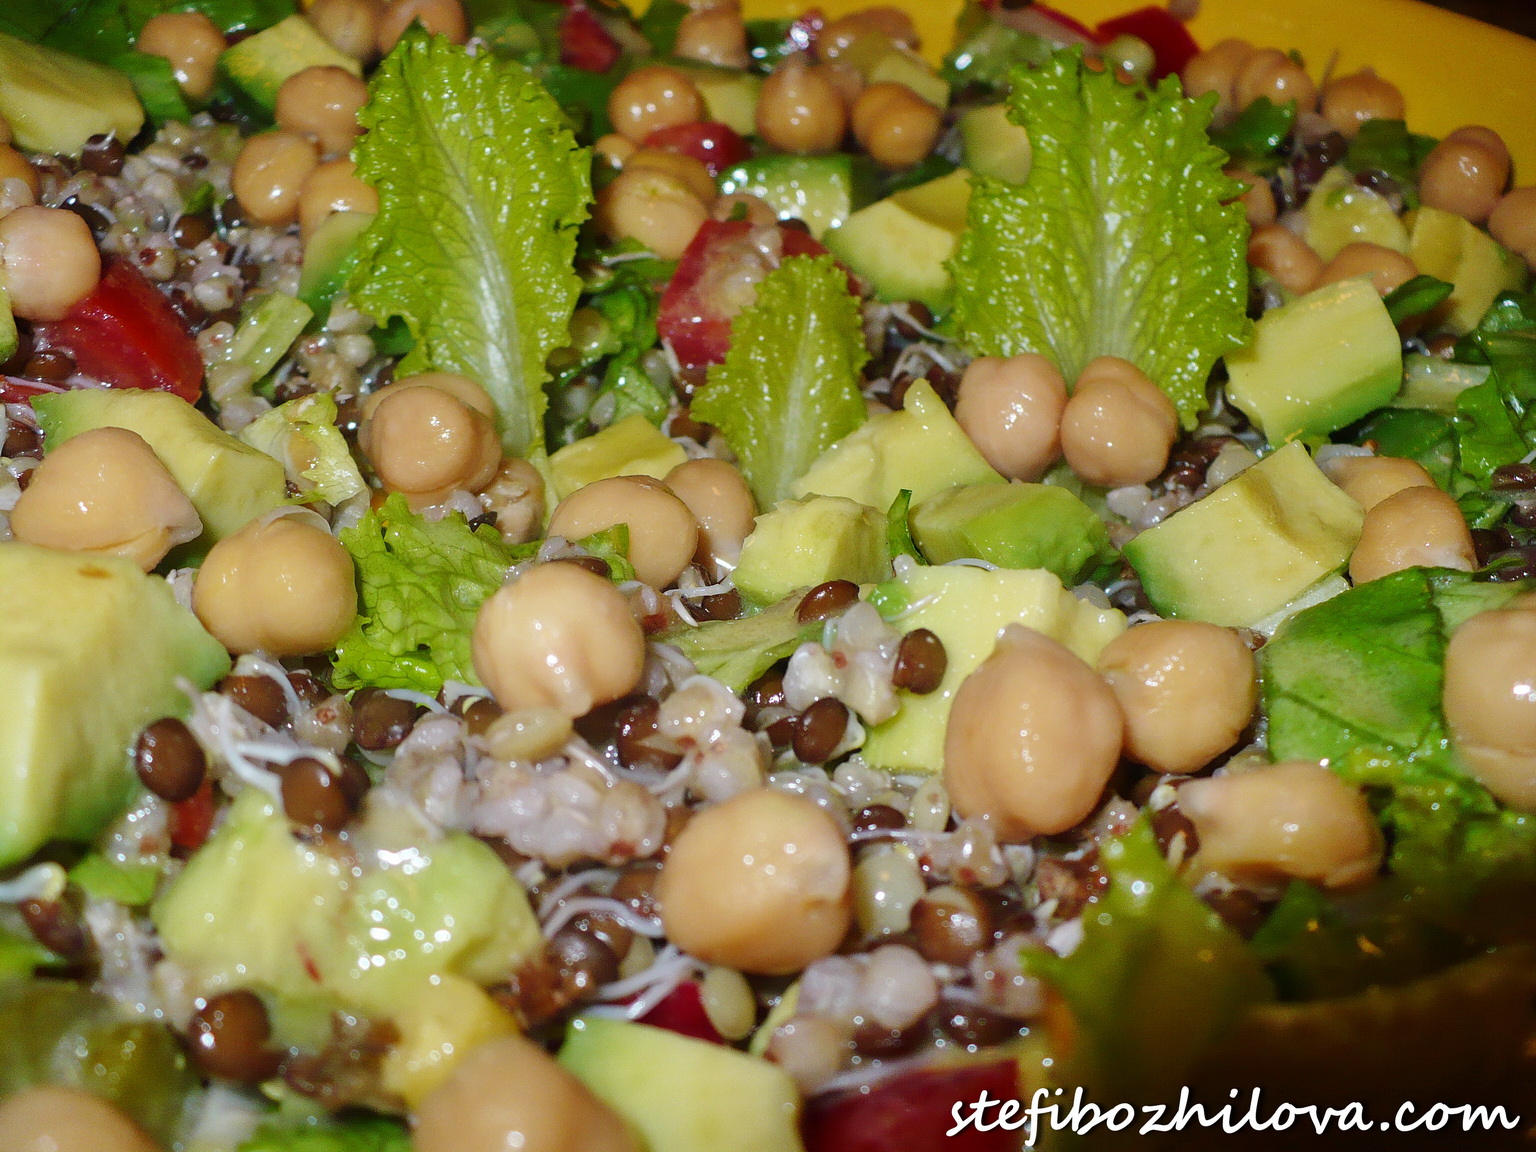 Rich salad with avocado, chickpeas, black lentils, buckwheat - 2